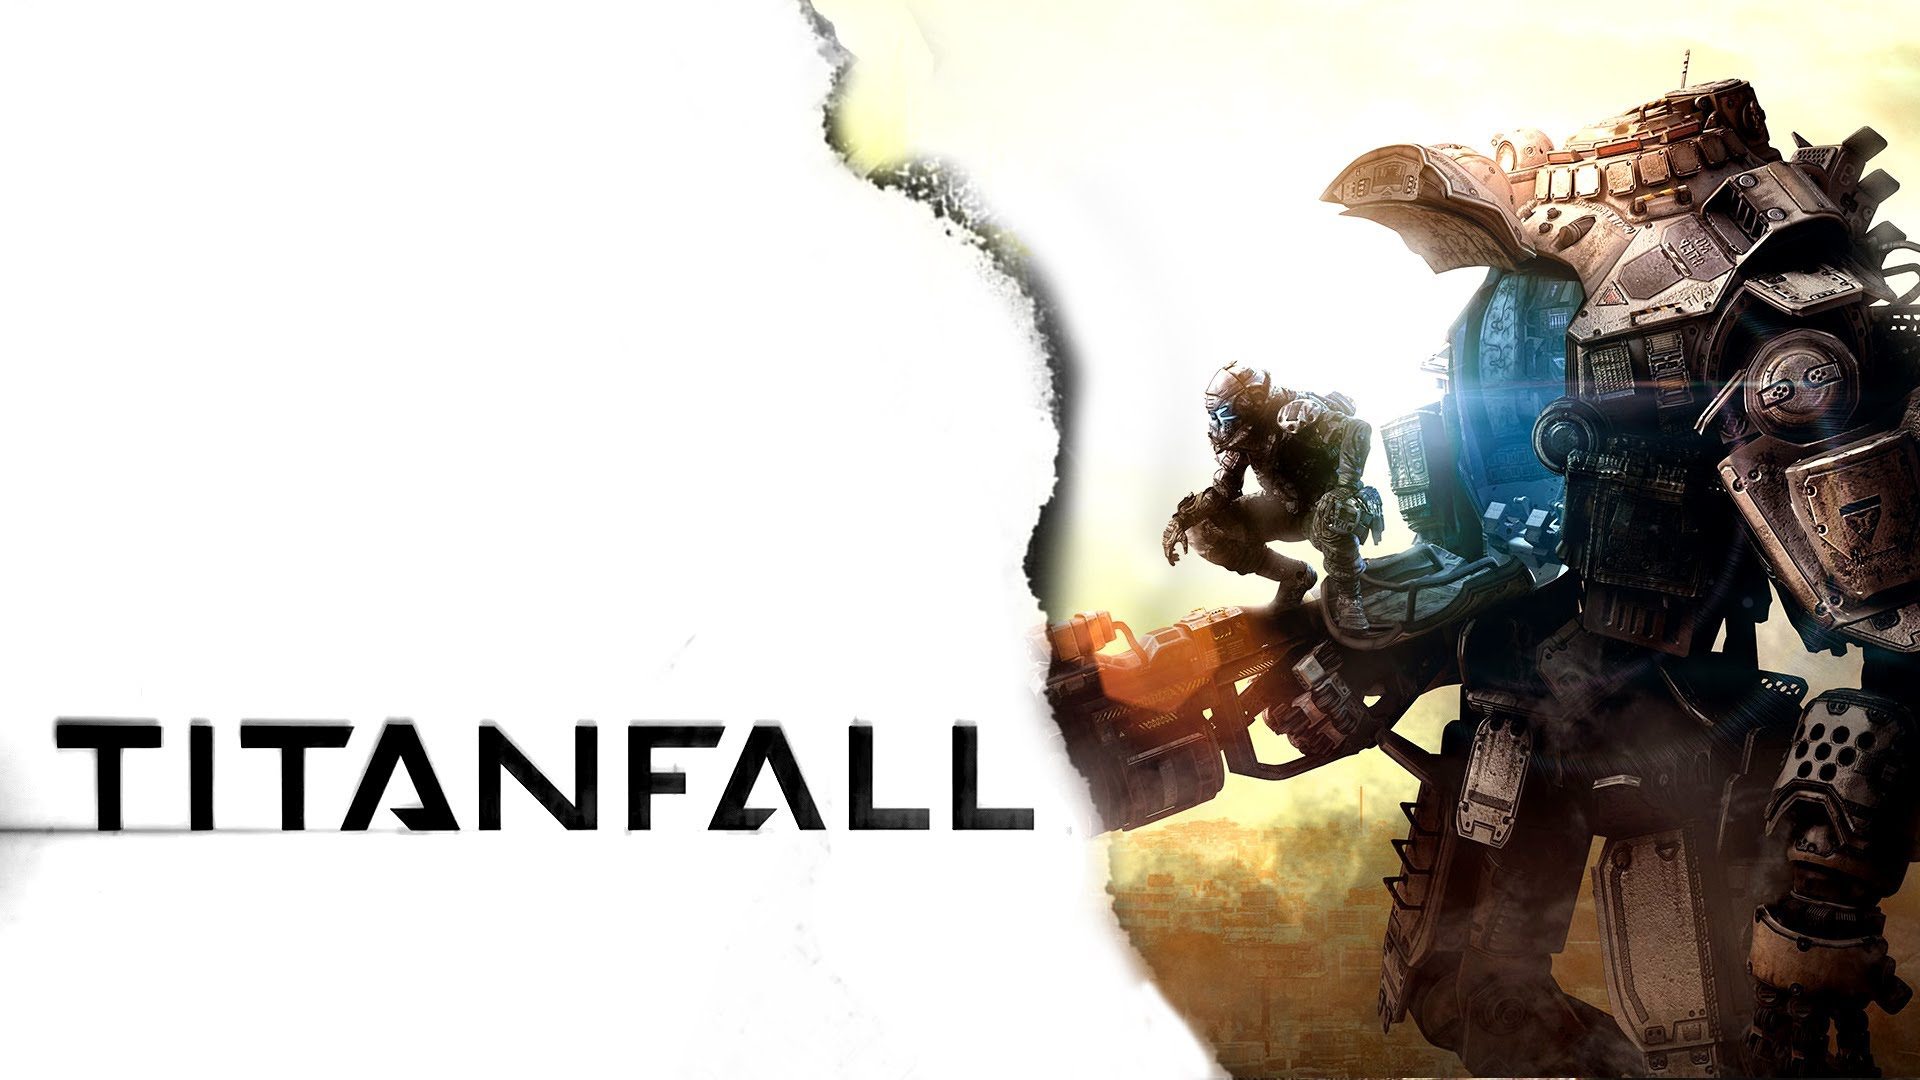 titanfall wallpaper 1080p - hd desktop wallpapers | 4k hd